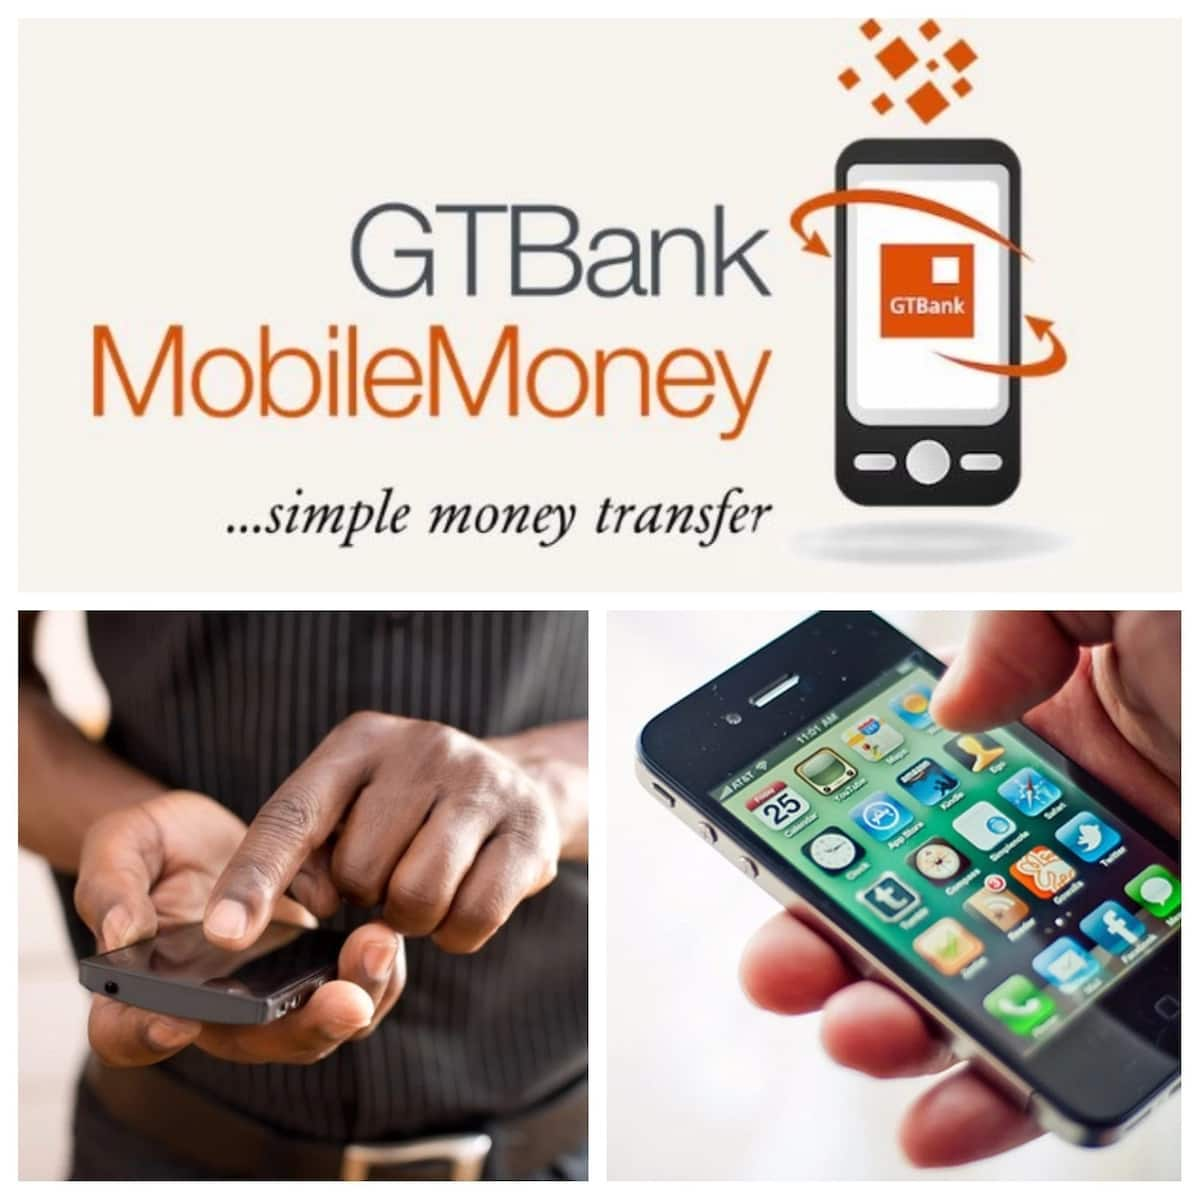 How to buy Airtime from GTBank? ▷ Legit ng